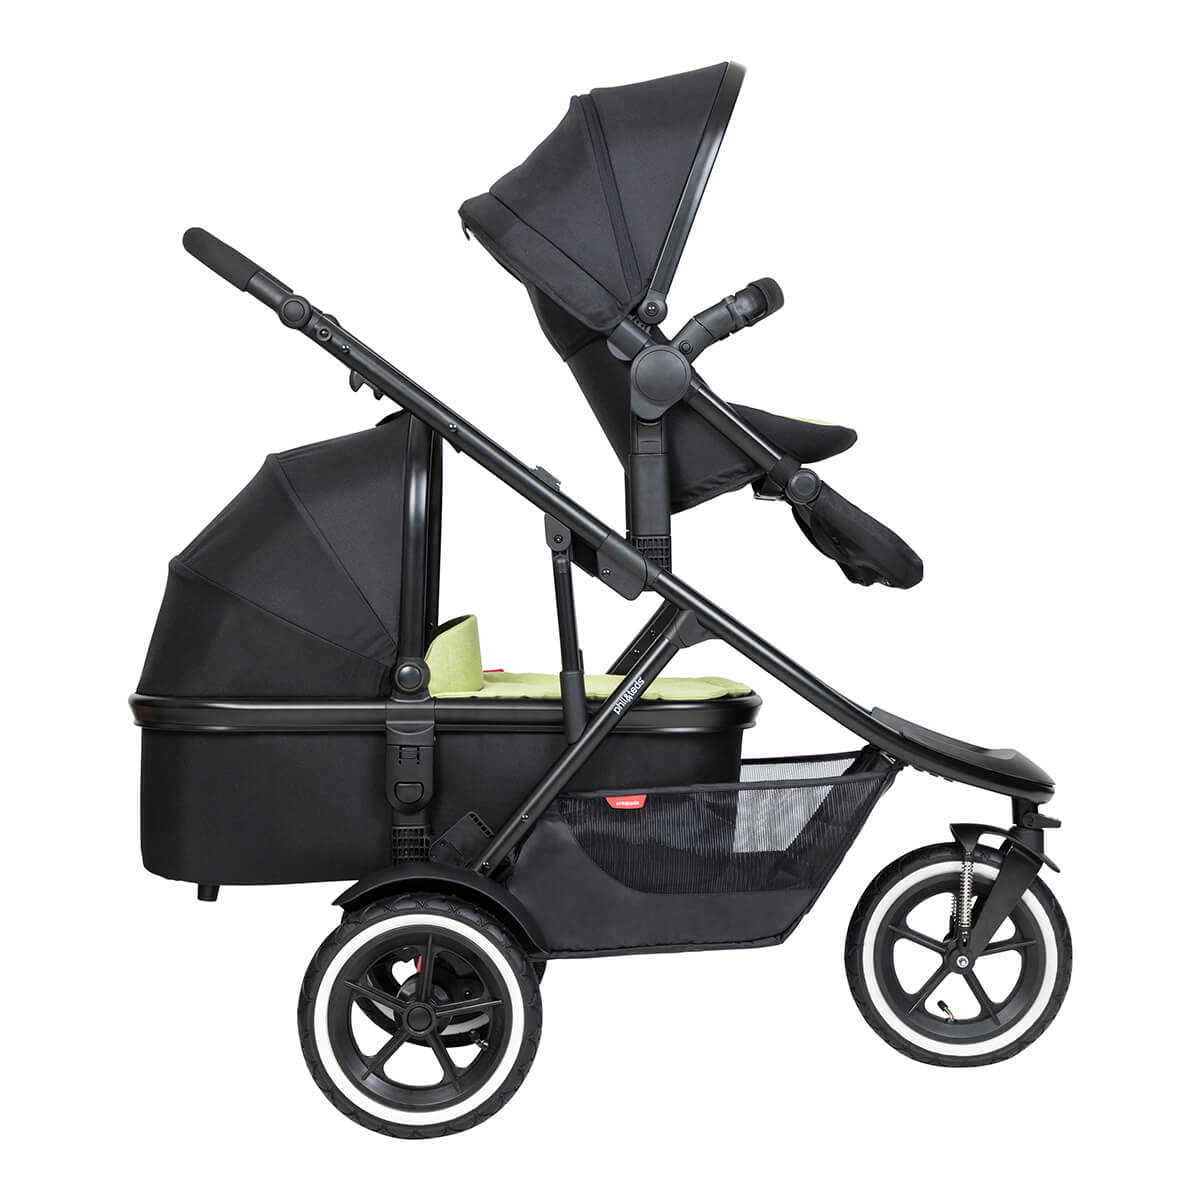 https://cdn.accentuate.io/4509867081825/19793939726506/philteds-sport-buggy-with-double-kit-extended-clip-and-snug-carrycot-side-view-v1626485284582.jpg?1200x1200